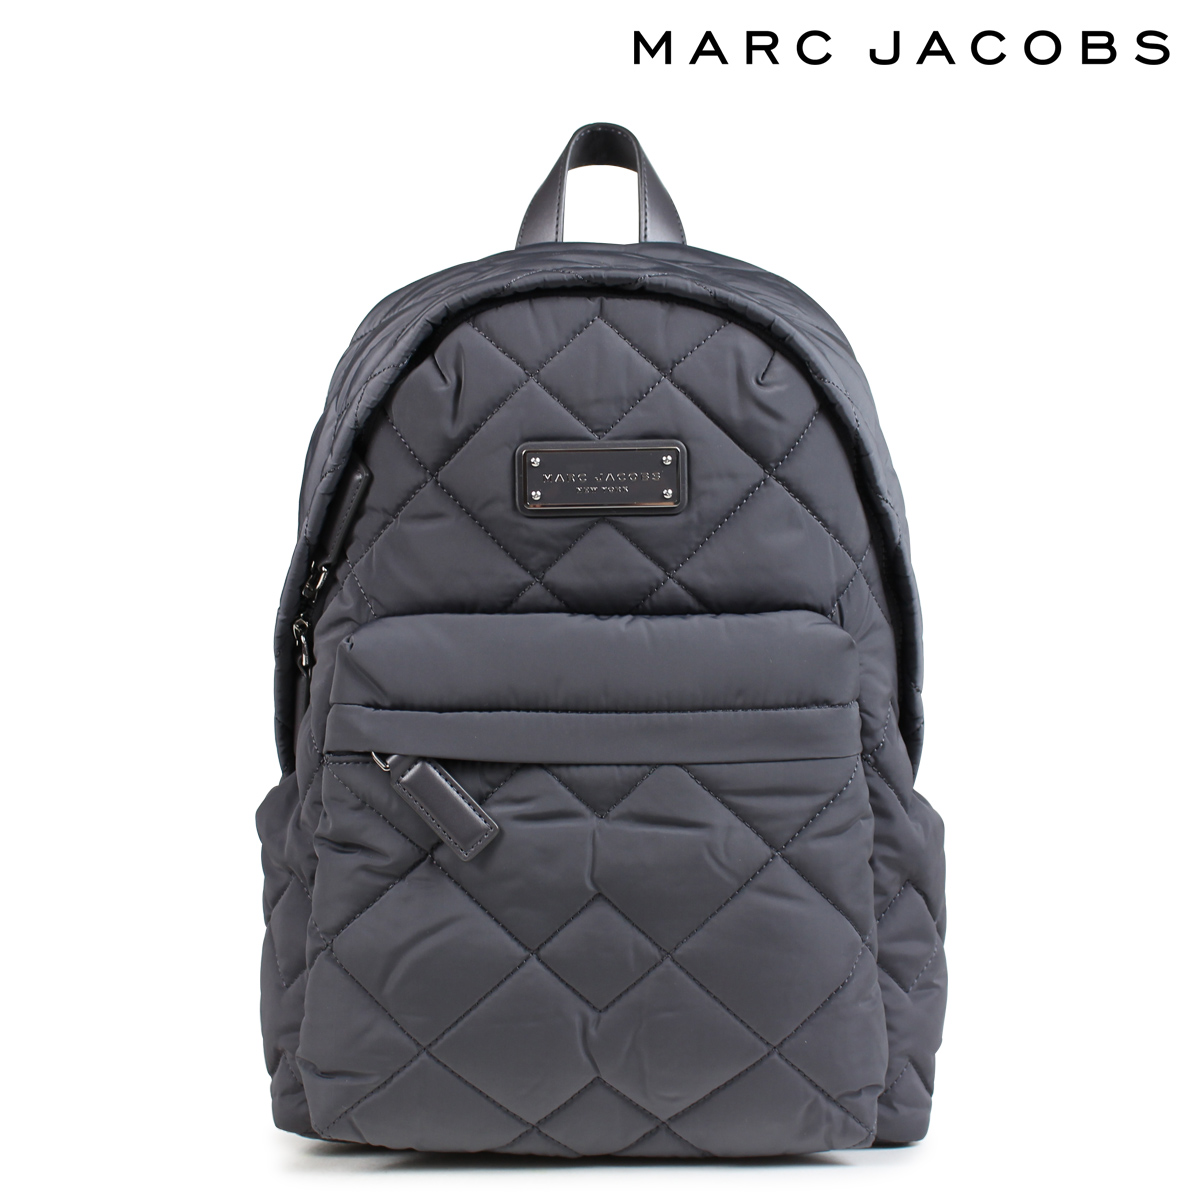 MARC JACOBS マークジェイコブス バッグ リュック レディース バックパック QUILTED BACKPACK ダークグレー M0011321 [9/19 新入荷]